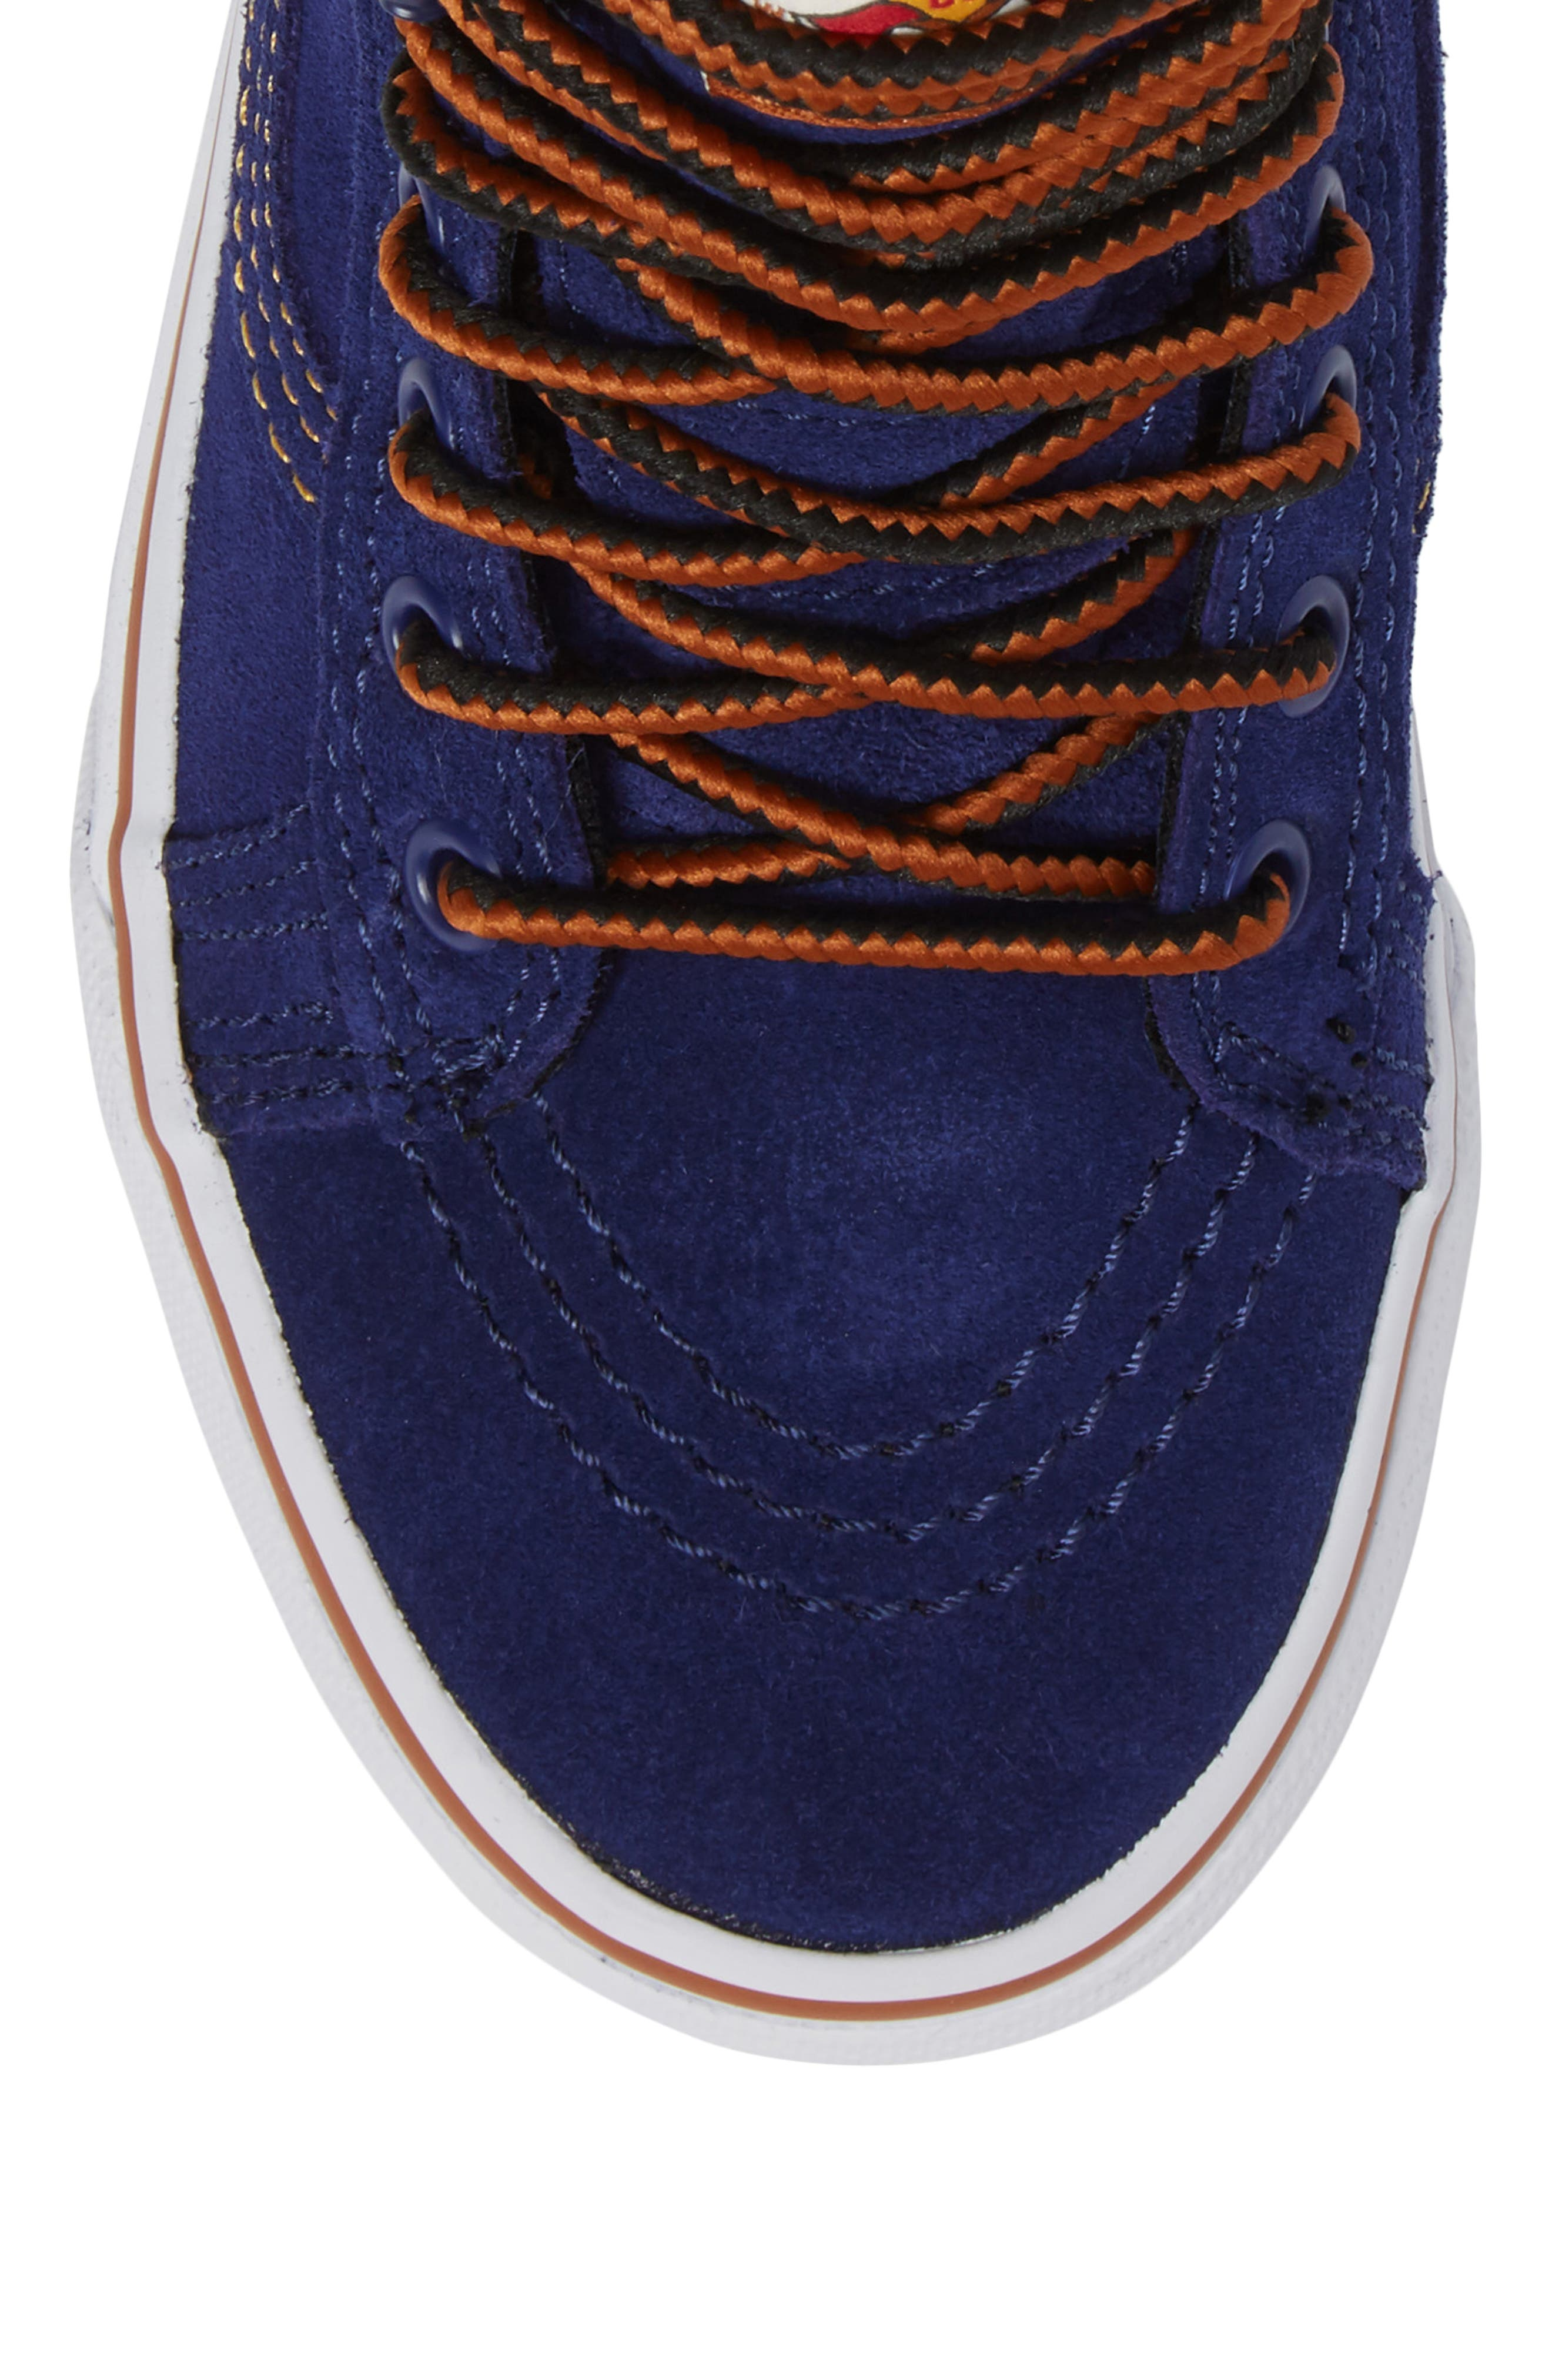 SK8-Hi Sneaker,                             Alternate thumbnail 40, color,